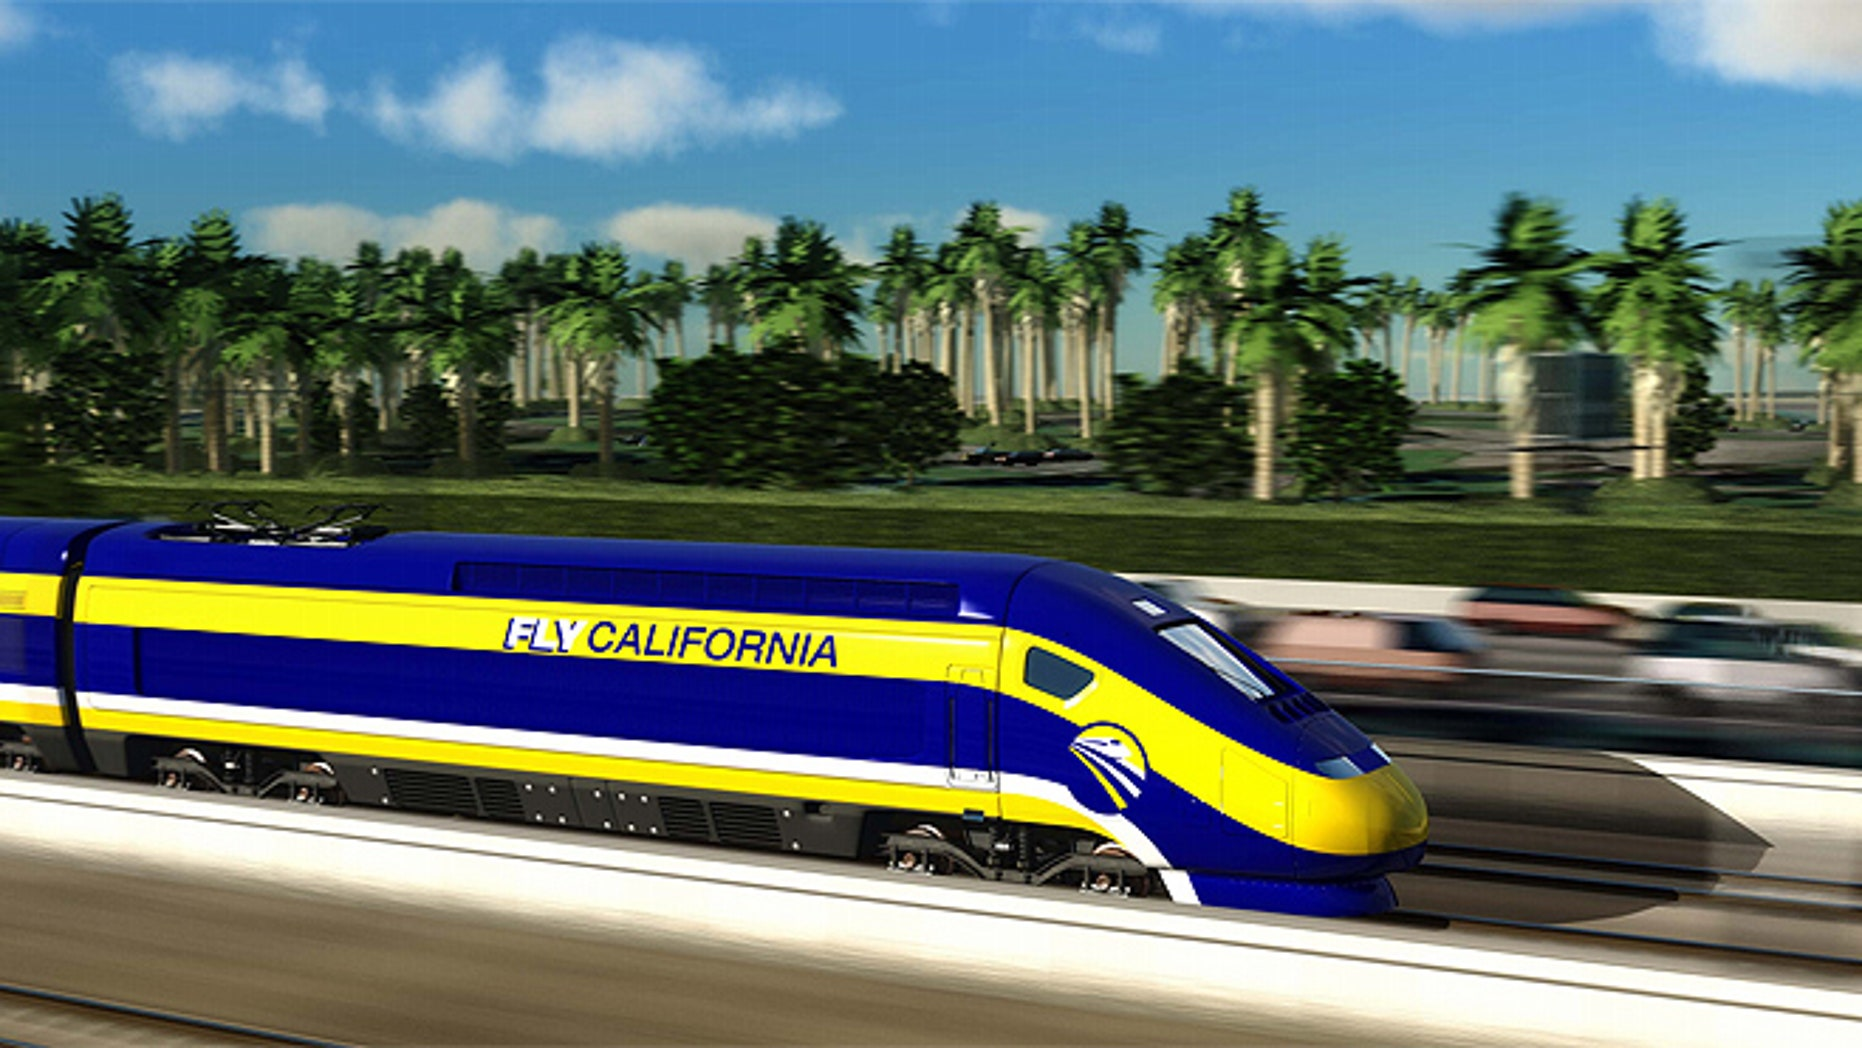 California High-Speed Rail Authority officials say a completed system will eliminate the need to spend more than $150 billion on 4,300 new lane-miles of highway, 115 additional gates at airports and four new airport runways. (CAHighSpeedRail.ca.gov.)